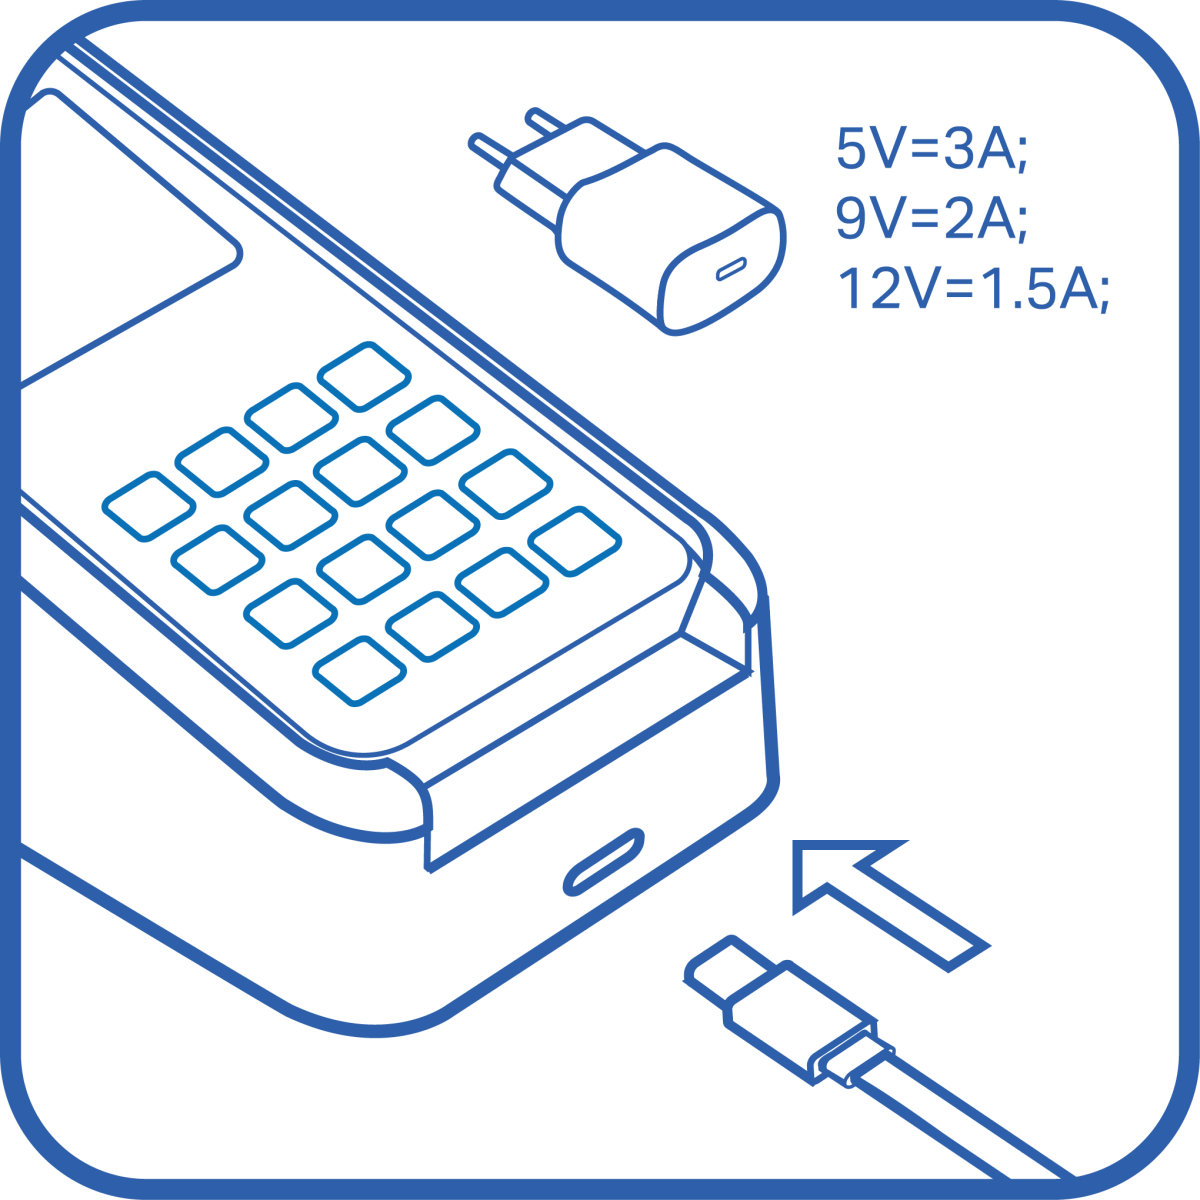 icon of a 3d cradle being plugged in via usb